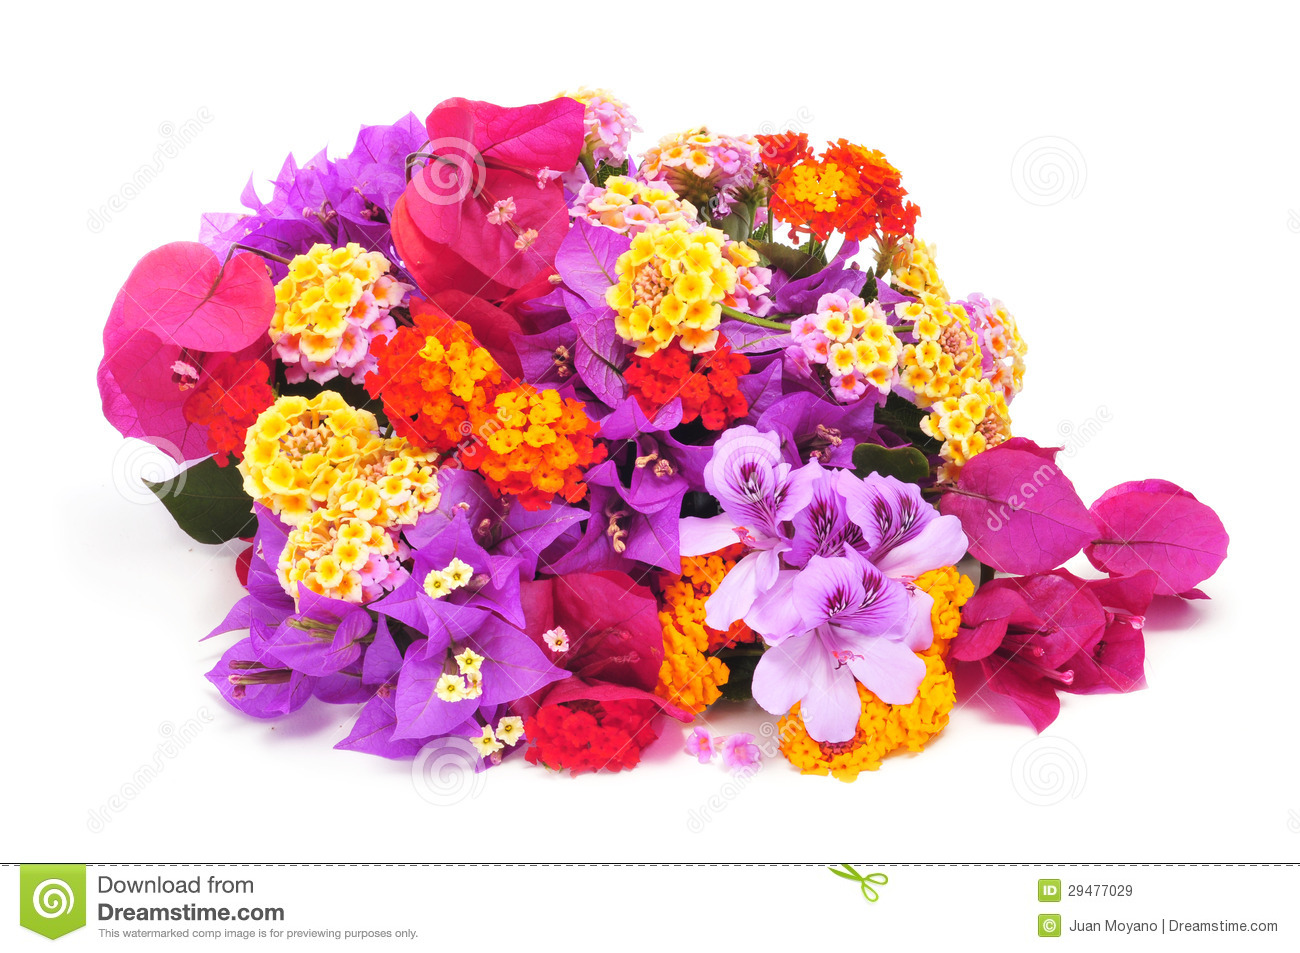 Bunch of flowers images download jpg royalty free stock Bunch Of Different Flowers Royalty Free Stock Images - Image: 29477029 jpg royalty free stock